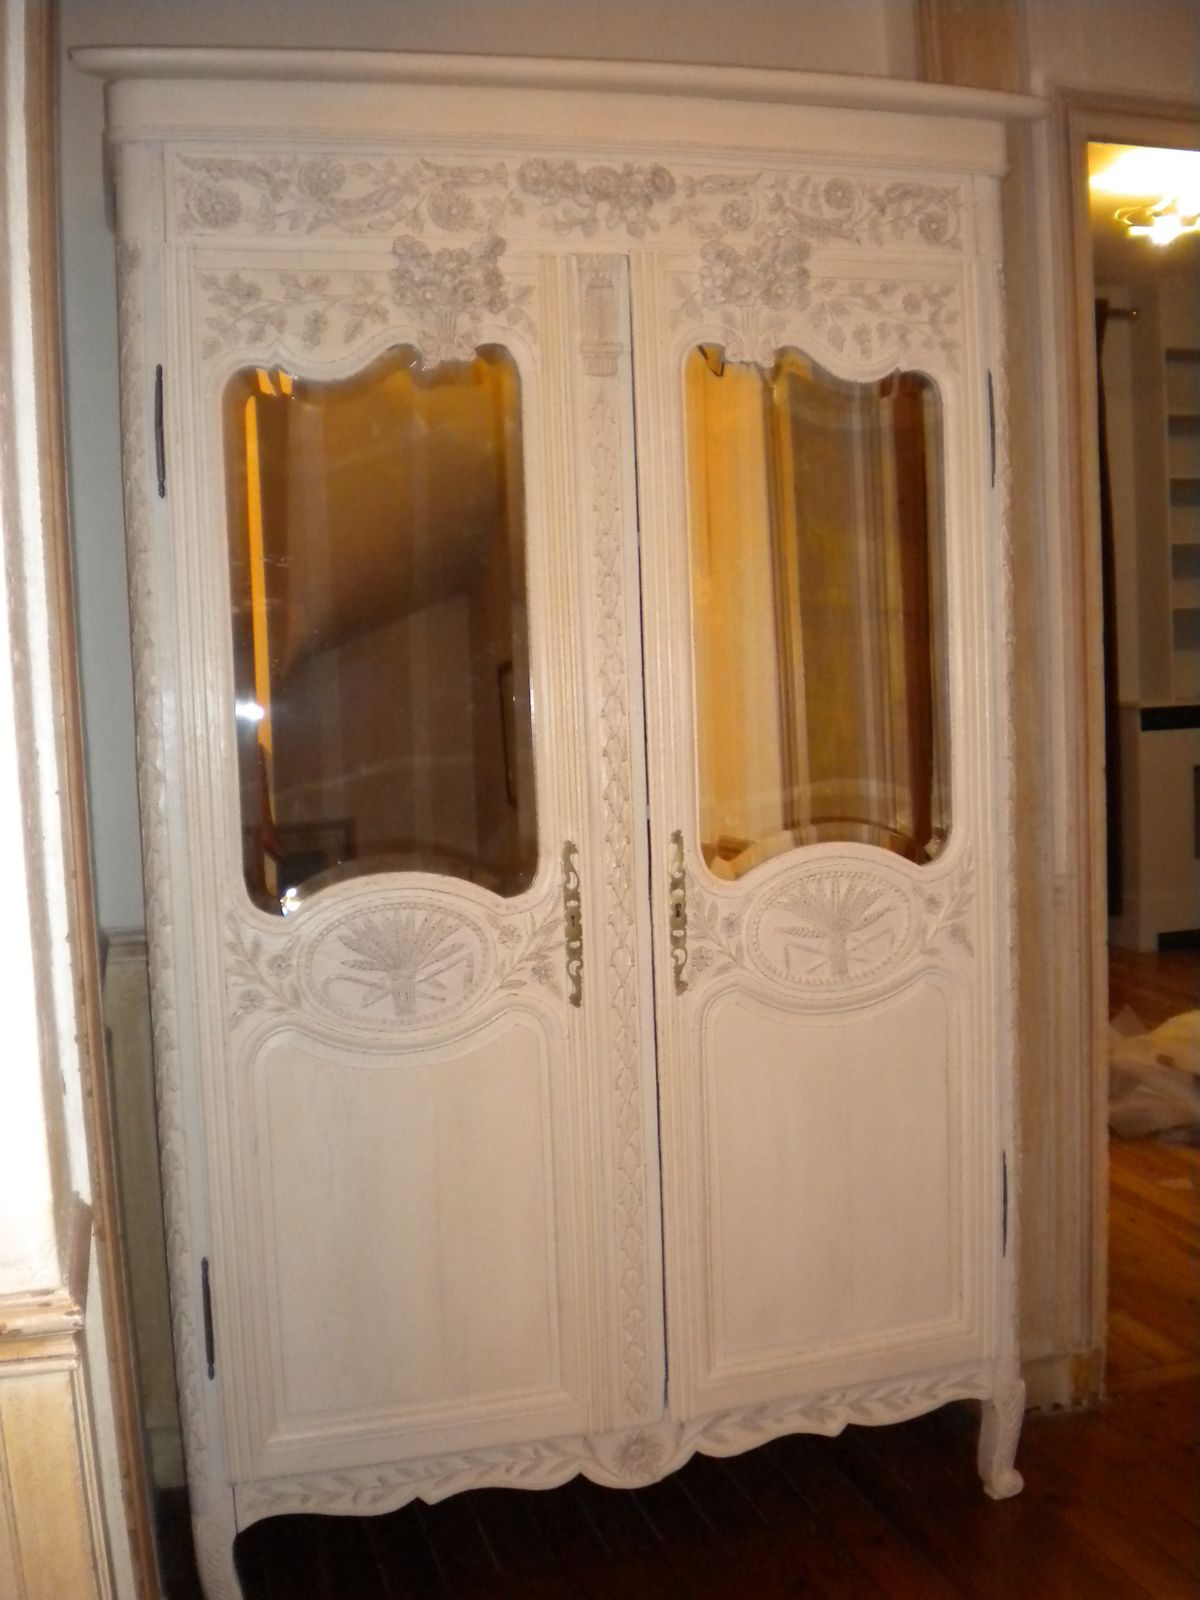 Metamorphose d une armoire ancienne ambiance patine for Ambiance et patine valence